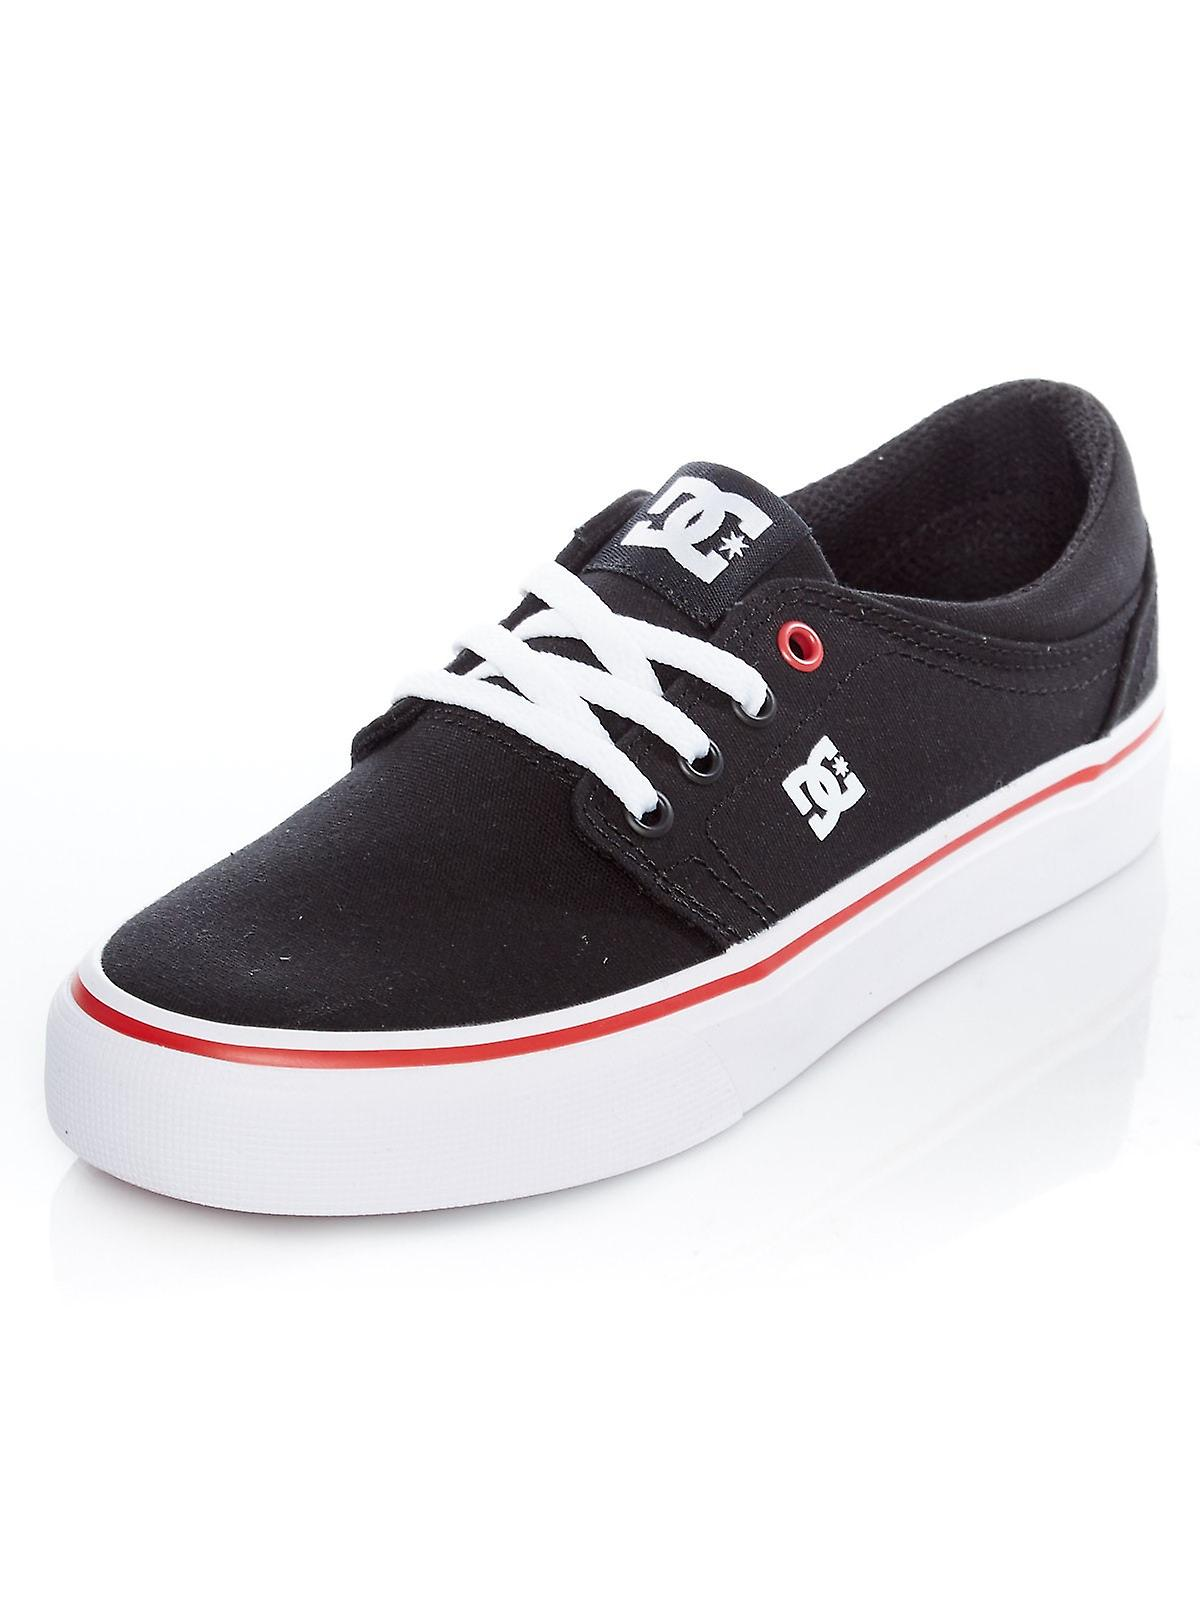 DC Black-White-Red Trase TX Womens Low Top Shoe